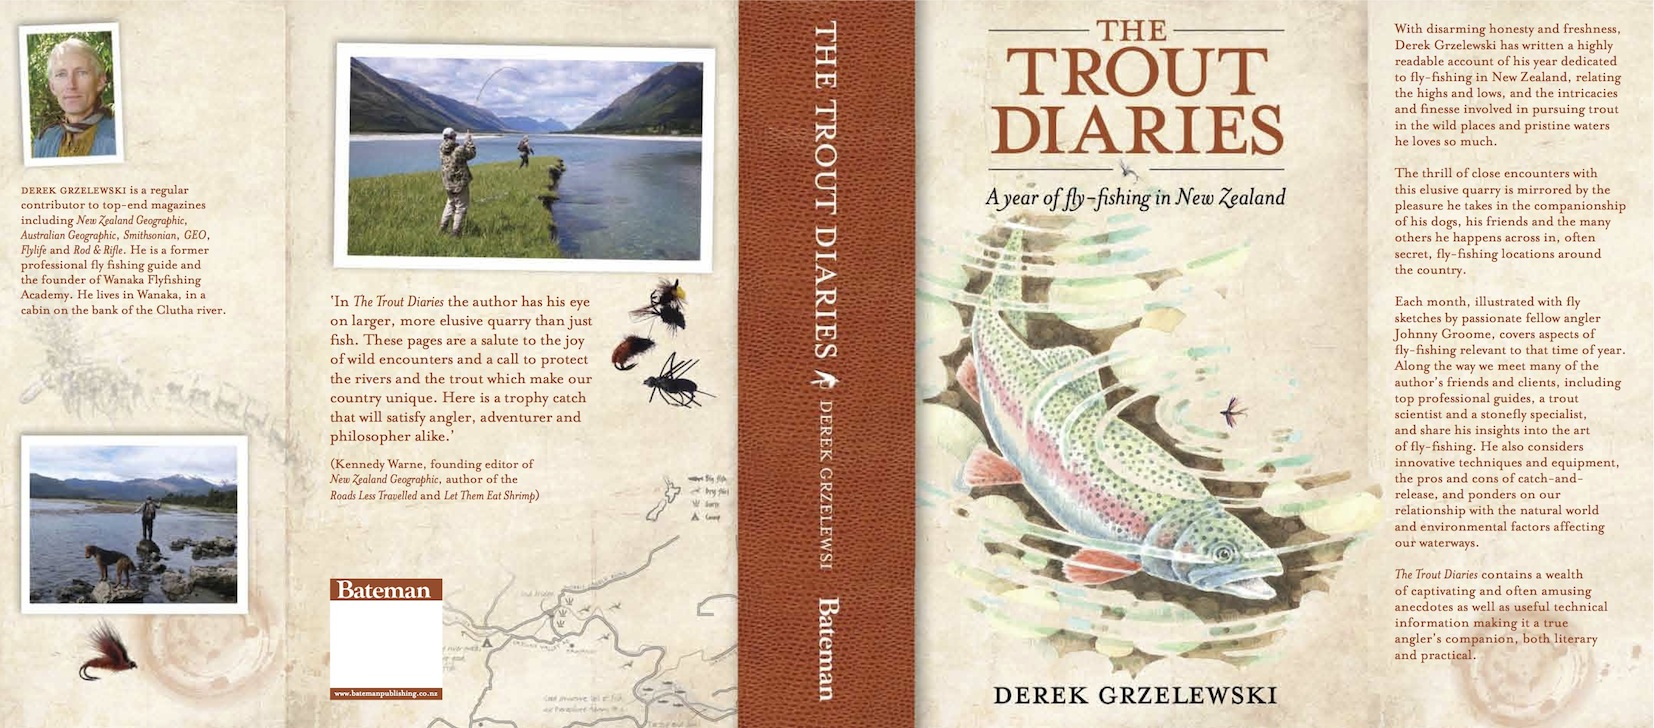 Trout diaries jacket copy